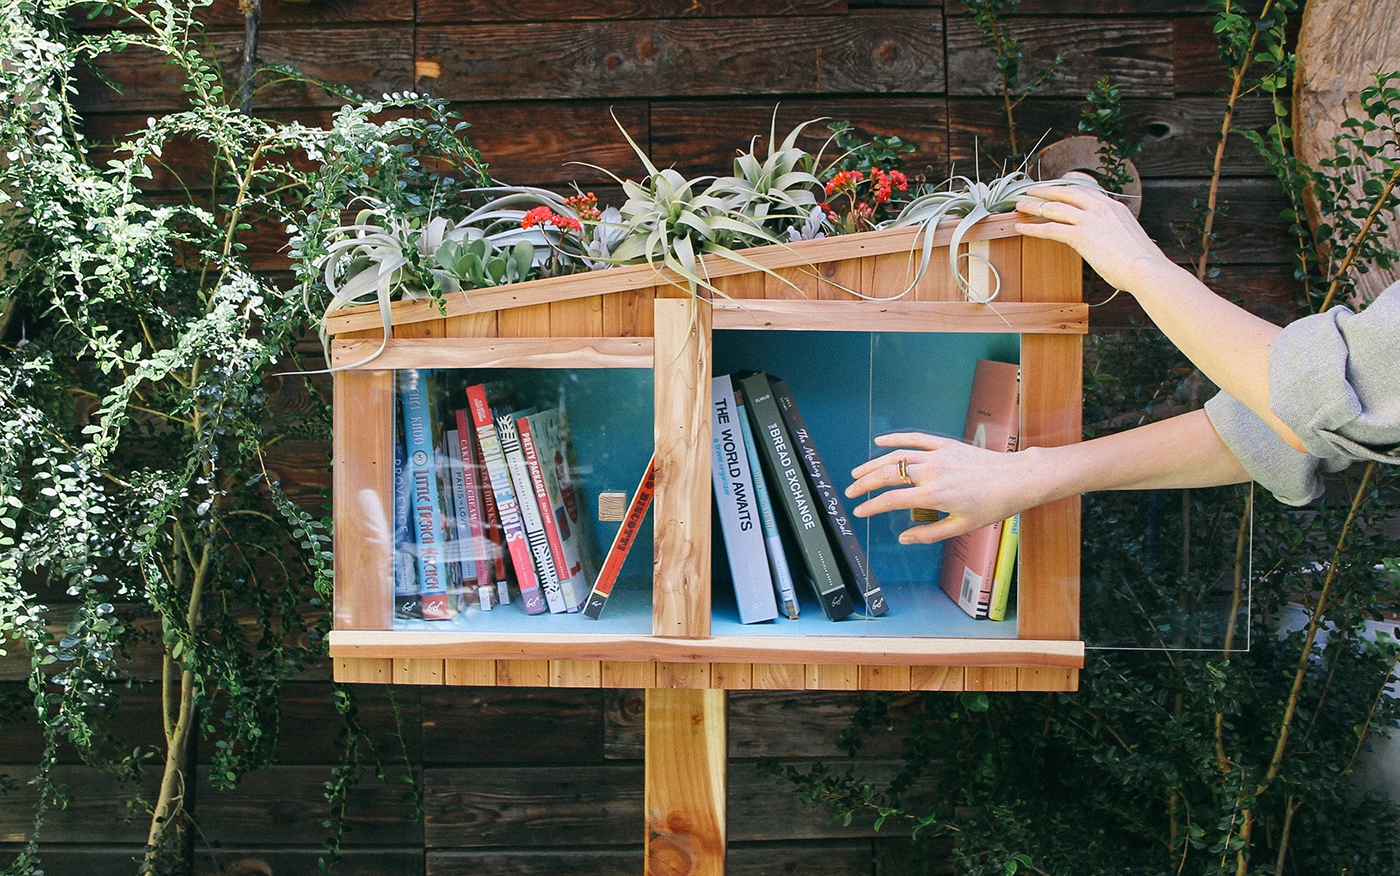 Sea Ranch-inspired library design by Ben Laramie, photography by Irene Kim